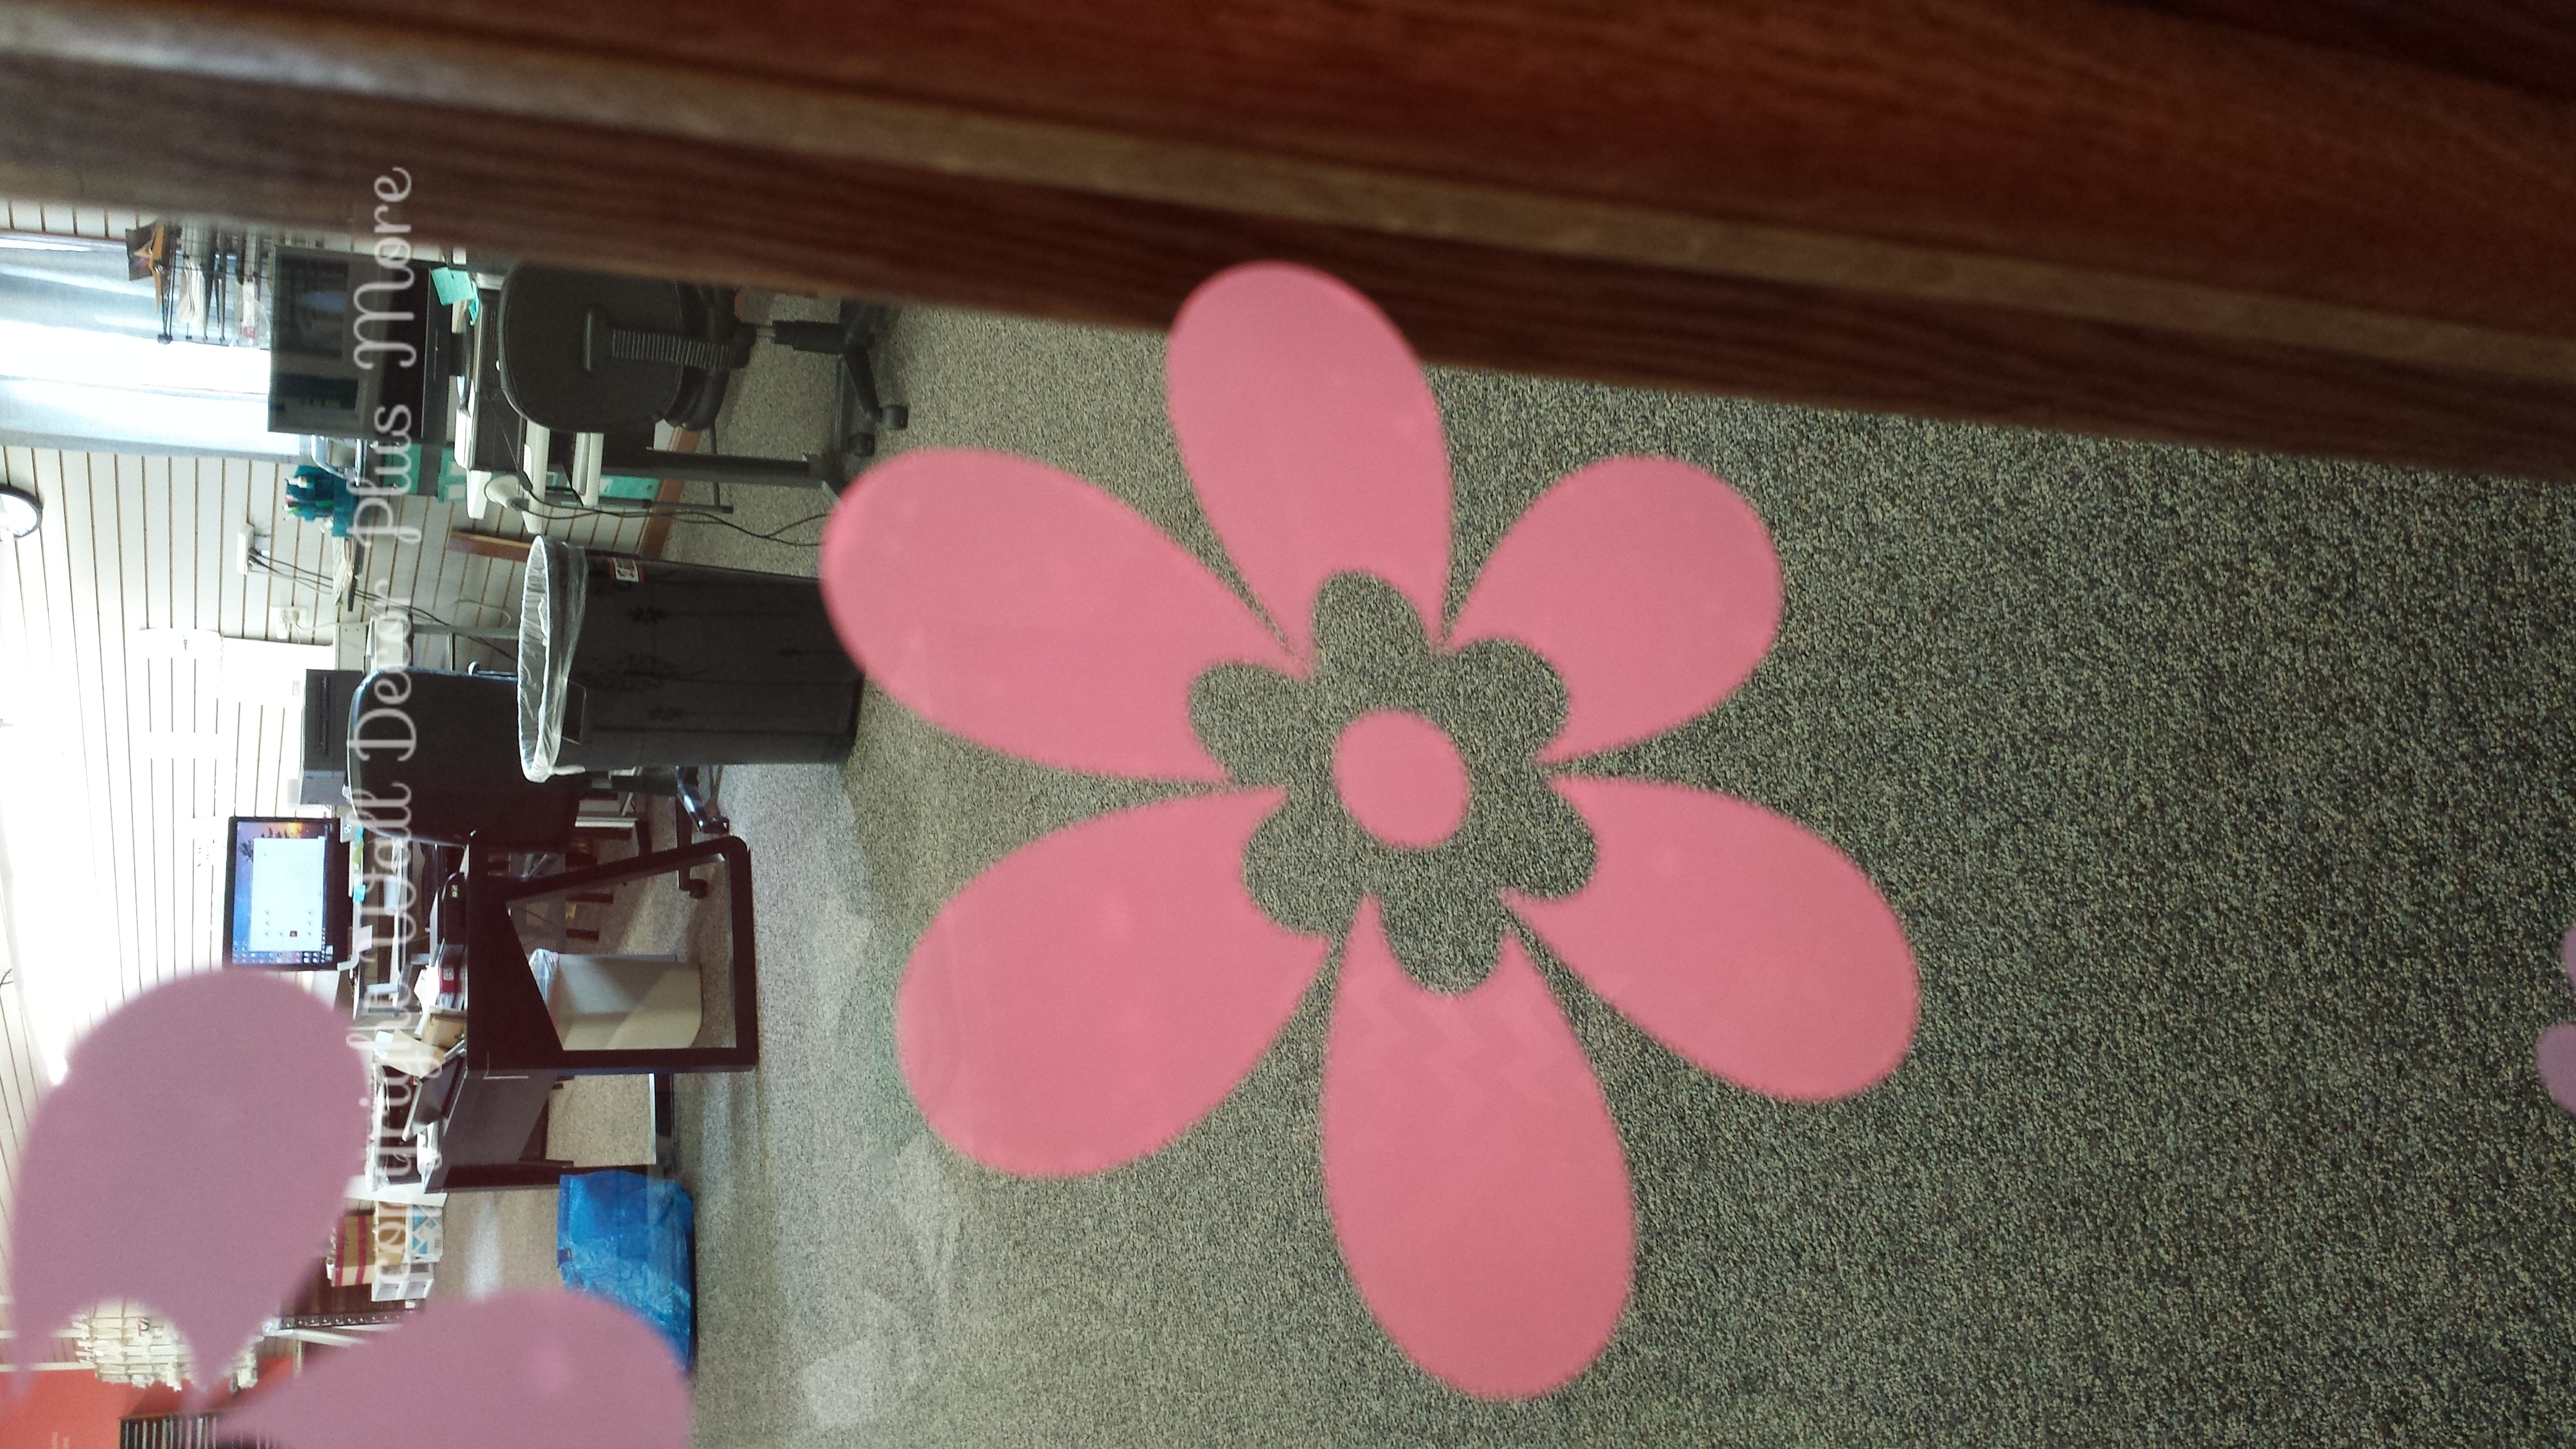 Soft Pink Flower Wall Decals Vinyl Sticker on Glass